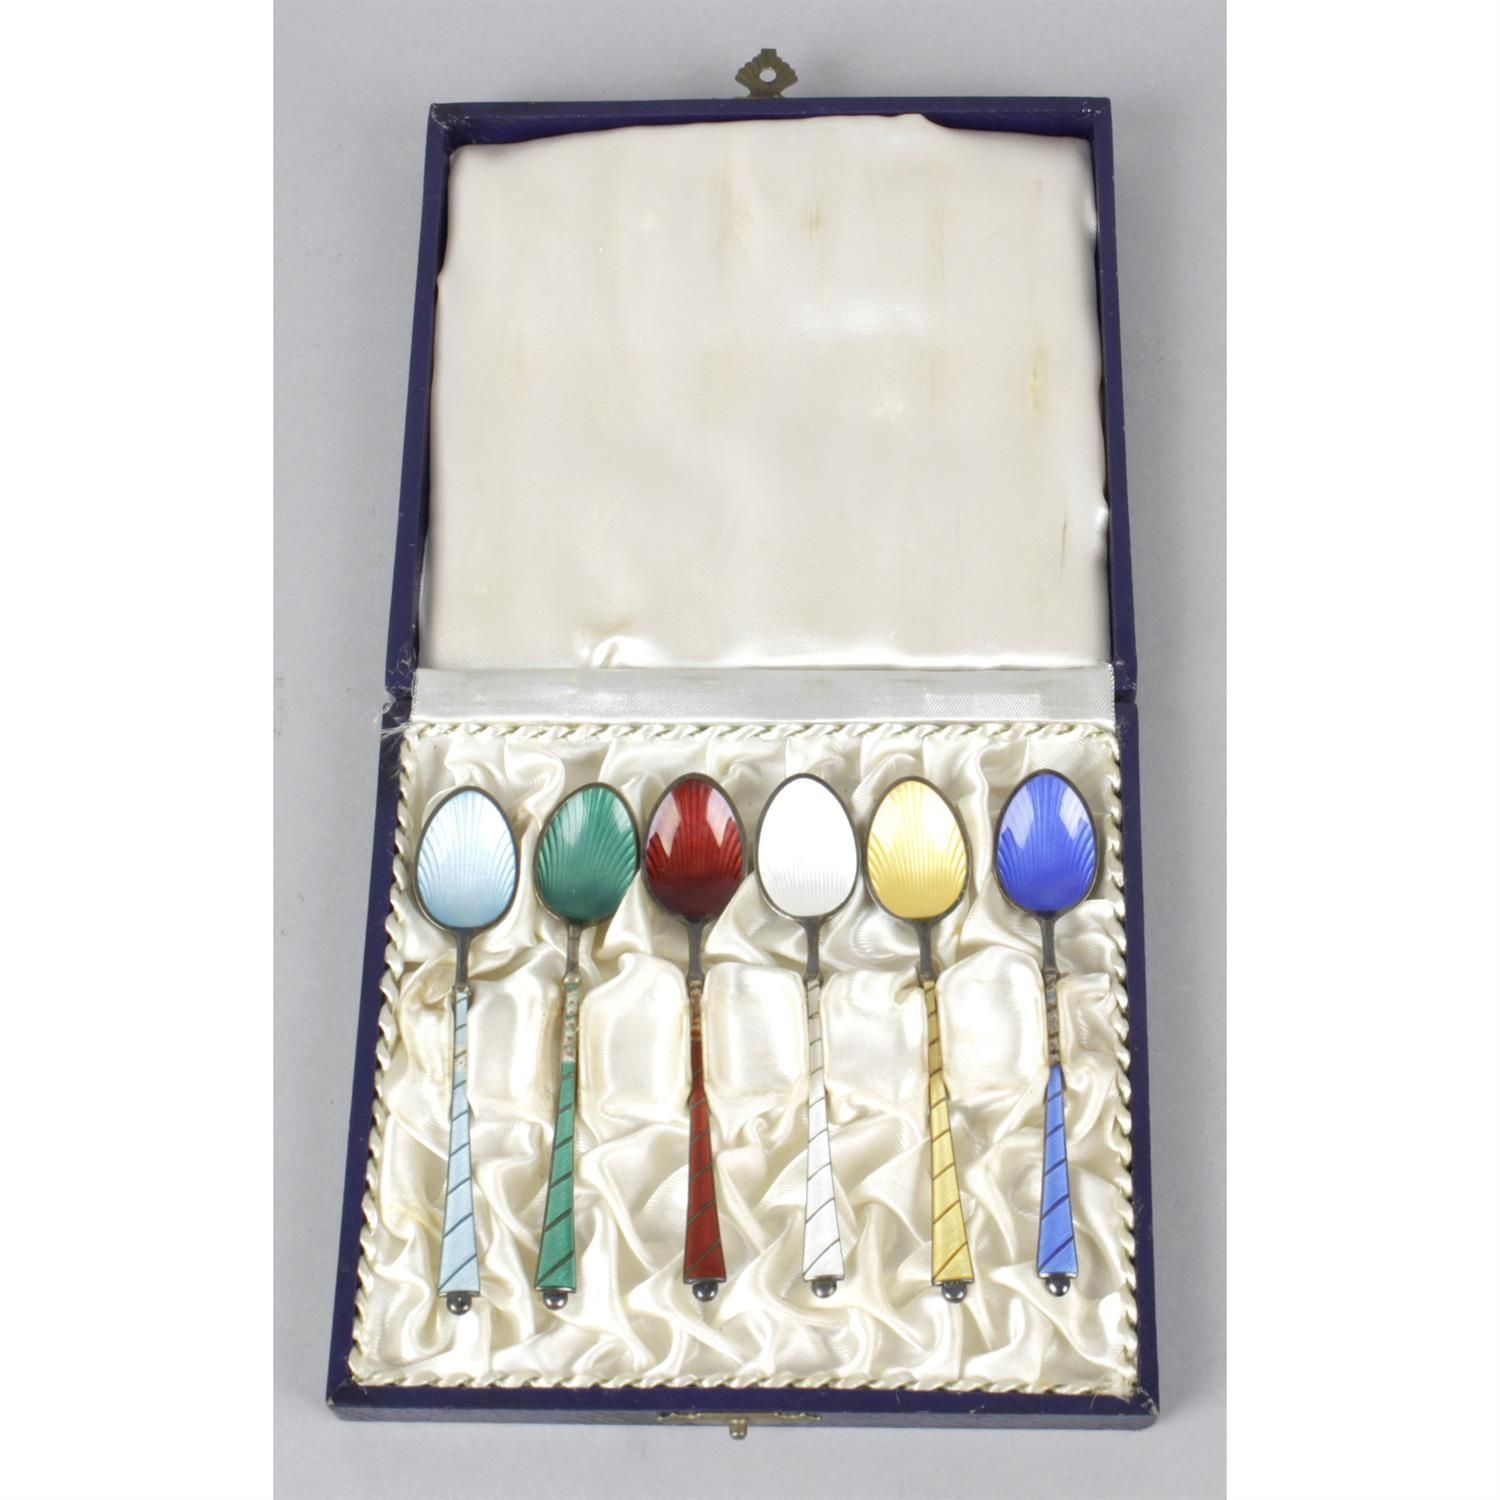 A cased set of Danish sterling silver and enamel coffee spoons, together with a 1930's silver